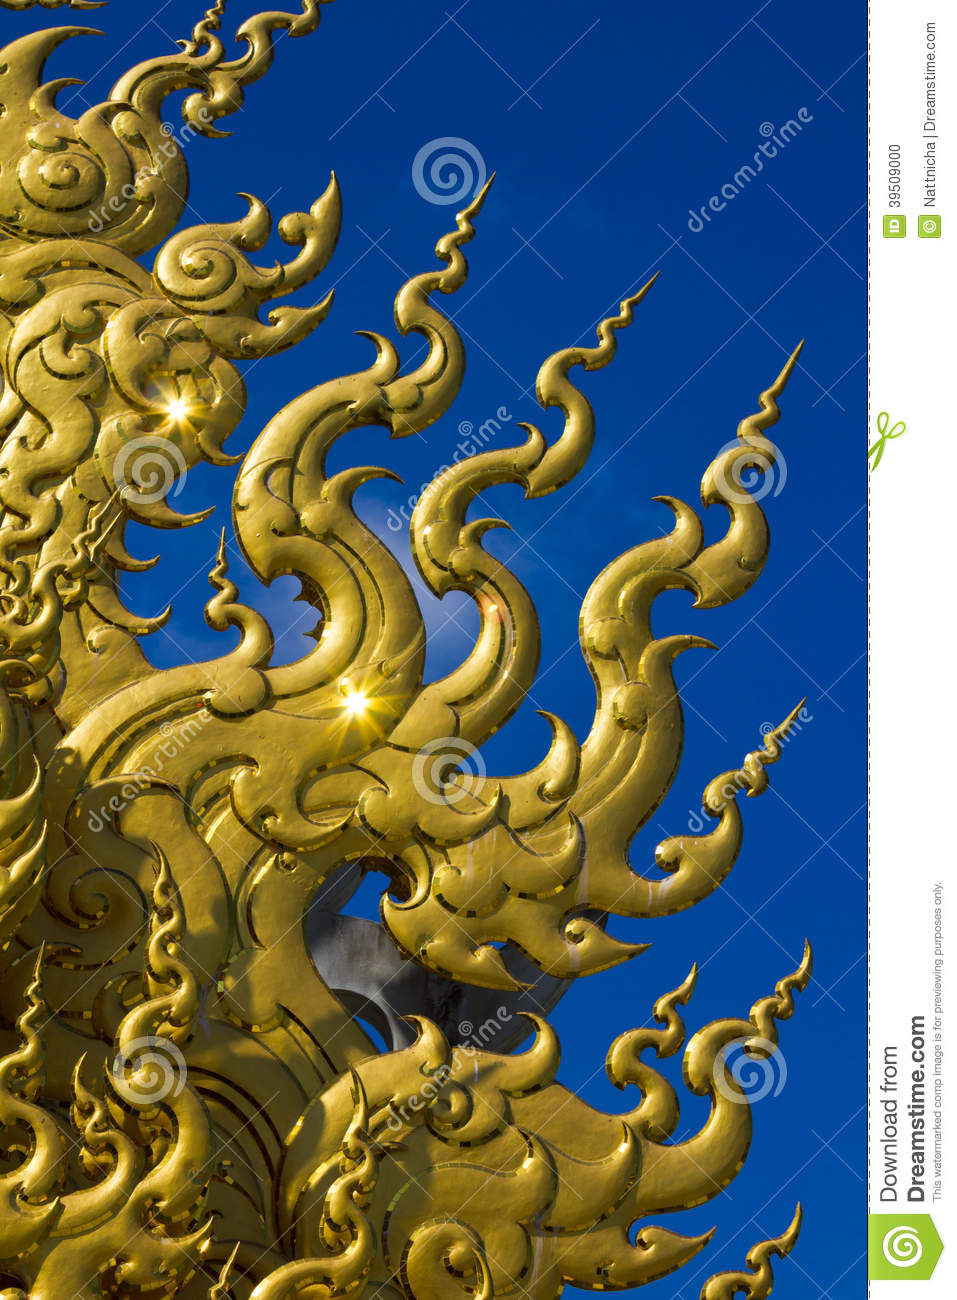 Golden sculpture at Wat Rong Khun